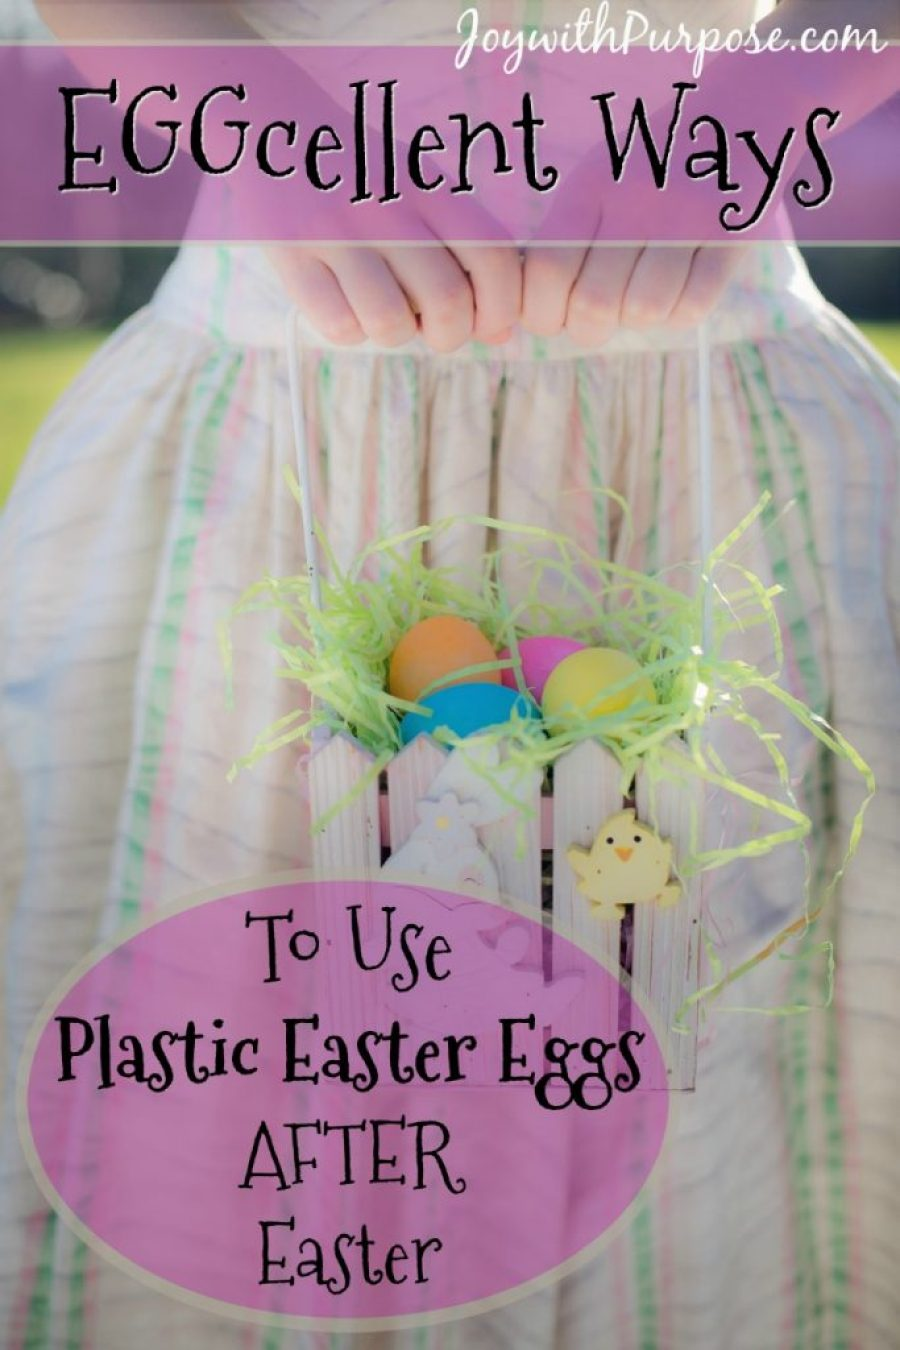 3 EGGcellent Ways to Use Plastic Easter Eggs